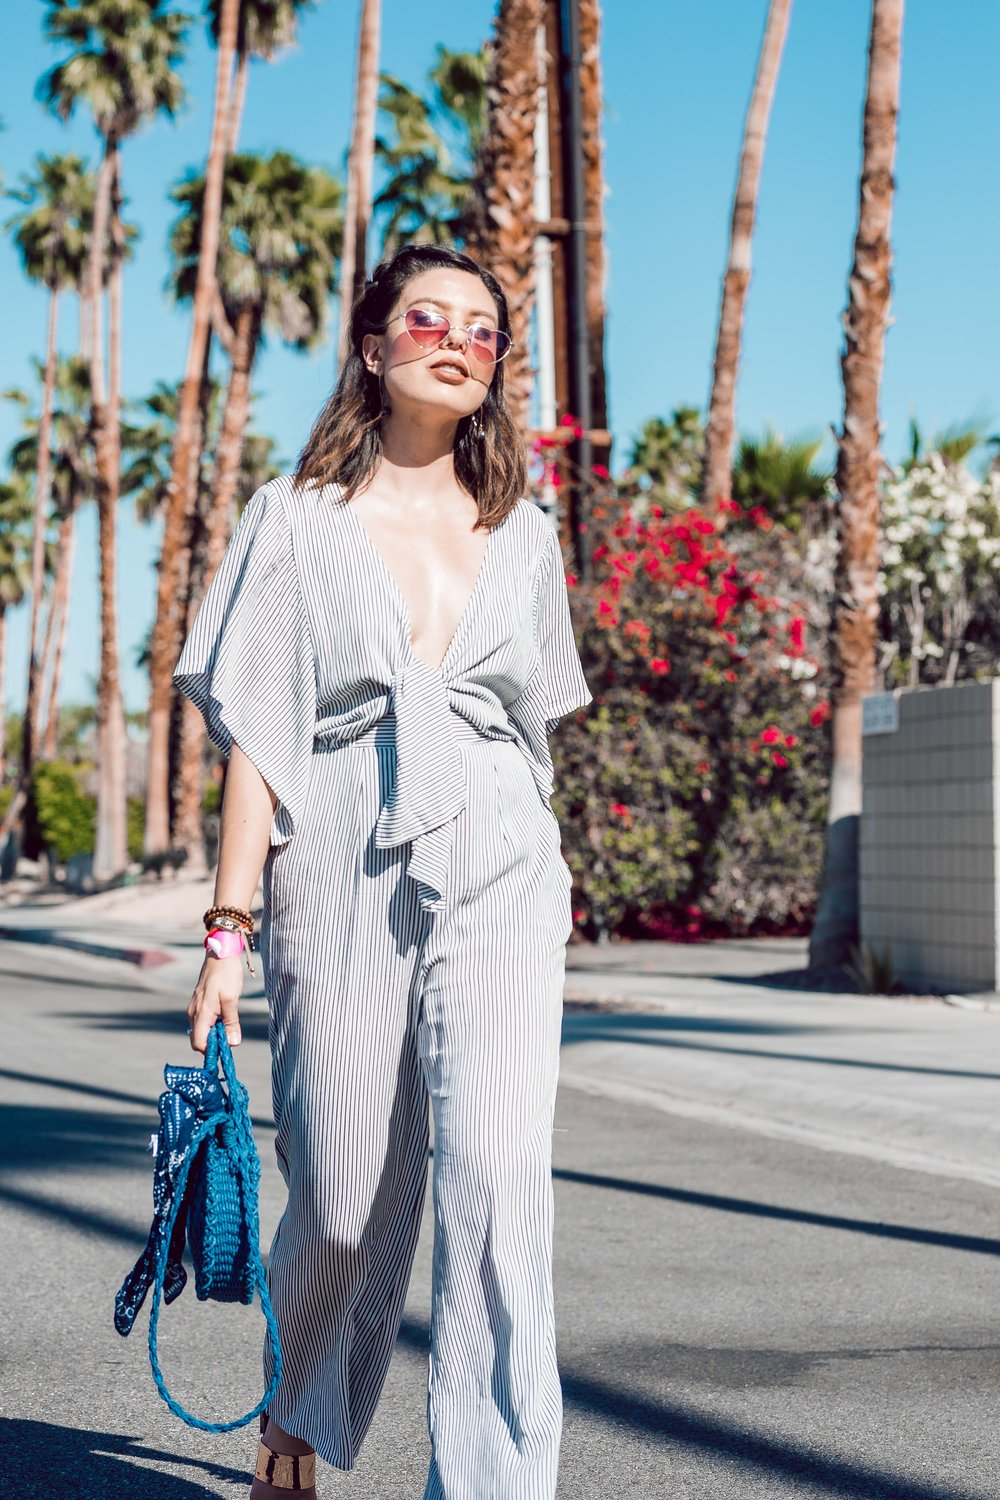 Rachel Off Duty: How to Style Patterned Jumpsuits for Summer